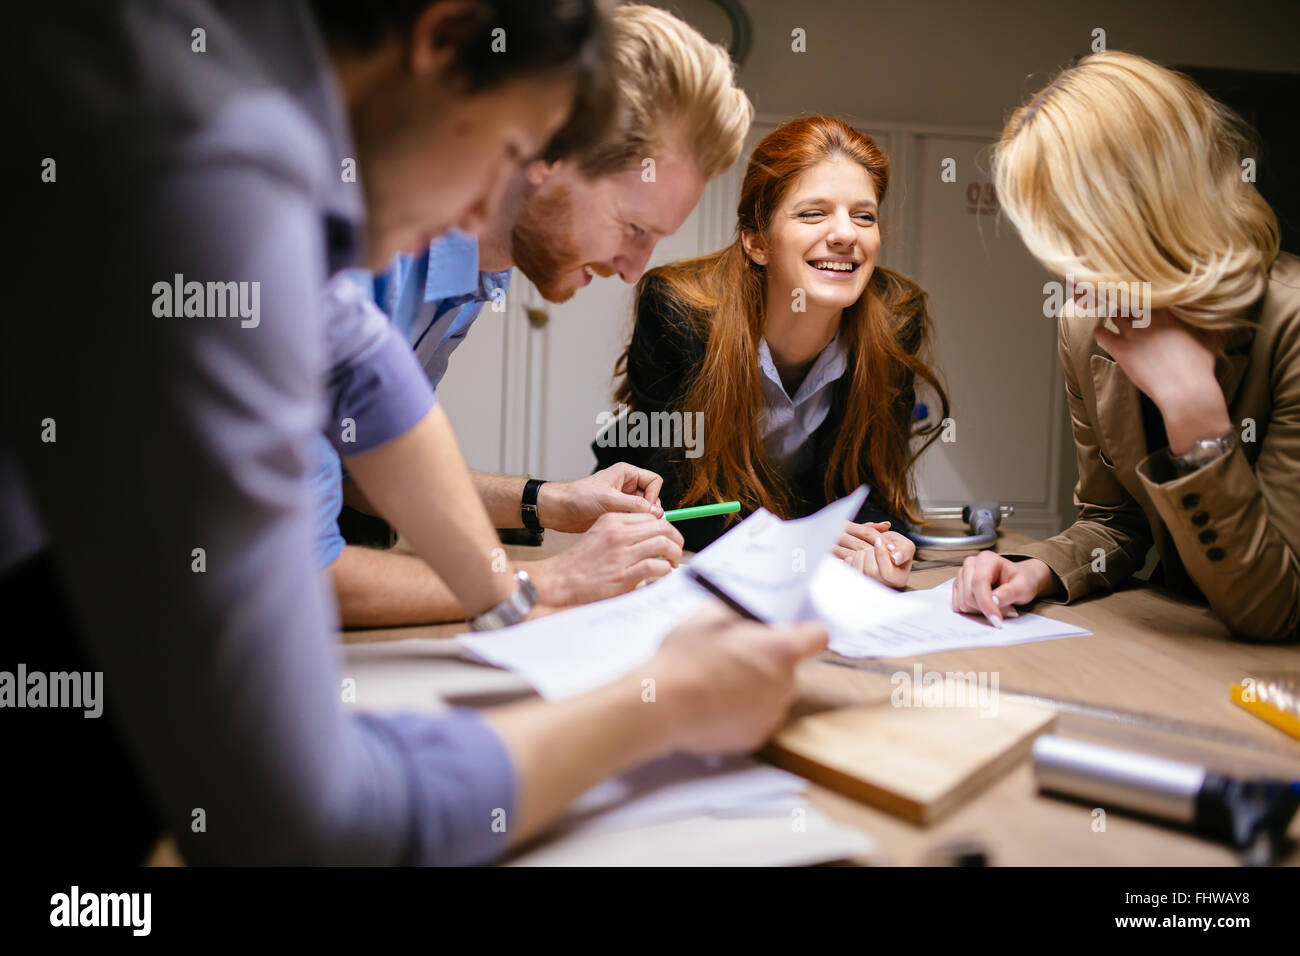 Classmates working on a project together and cooperating - Stock Image